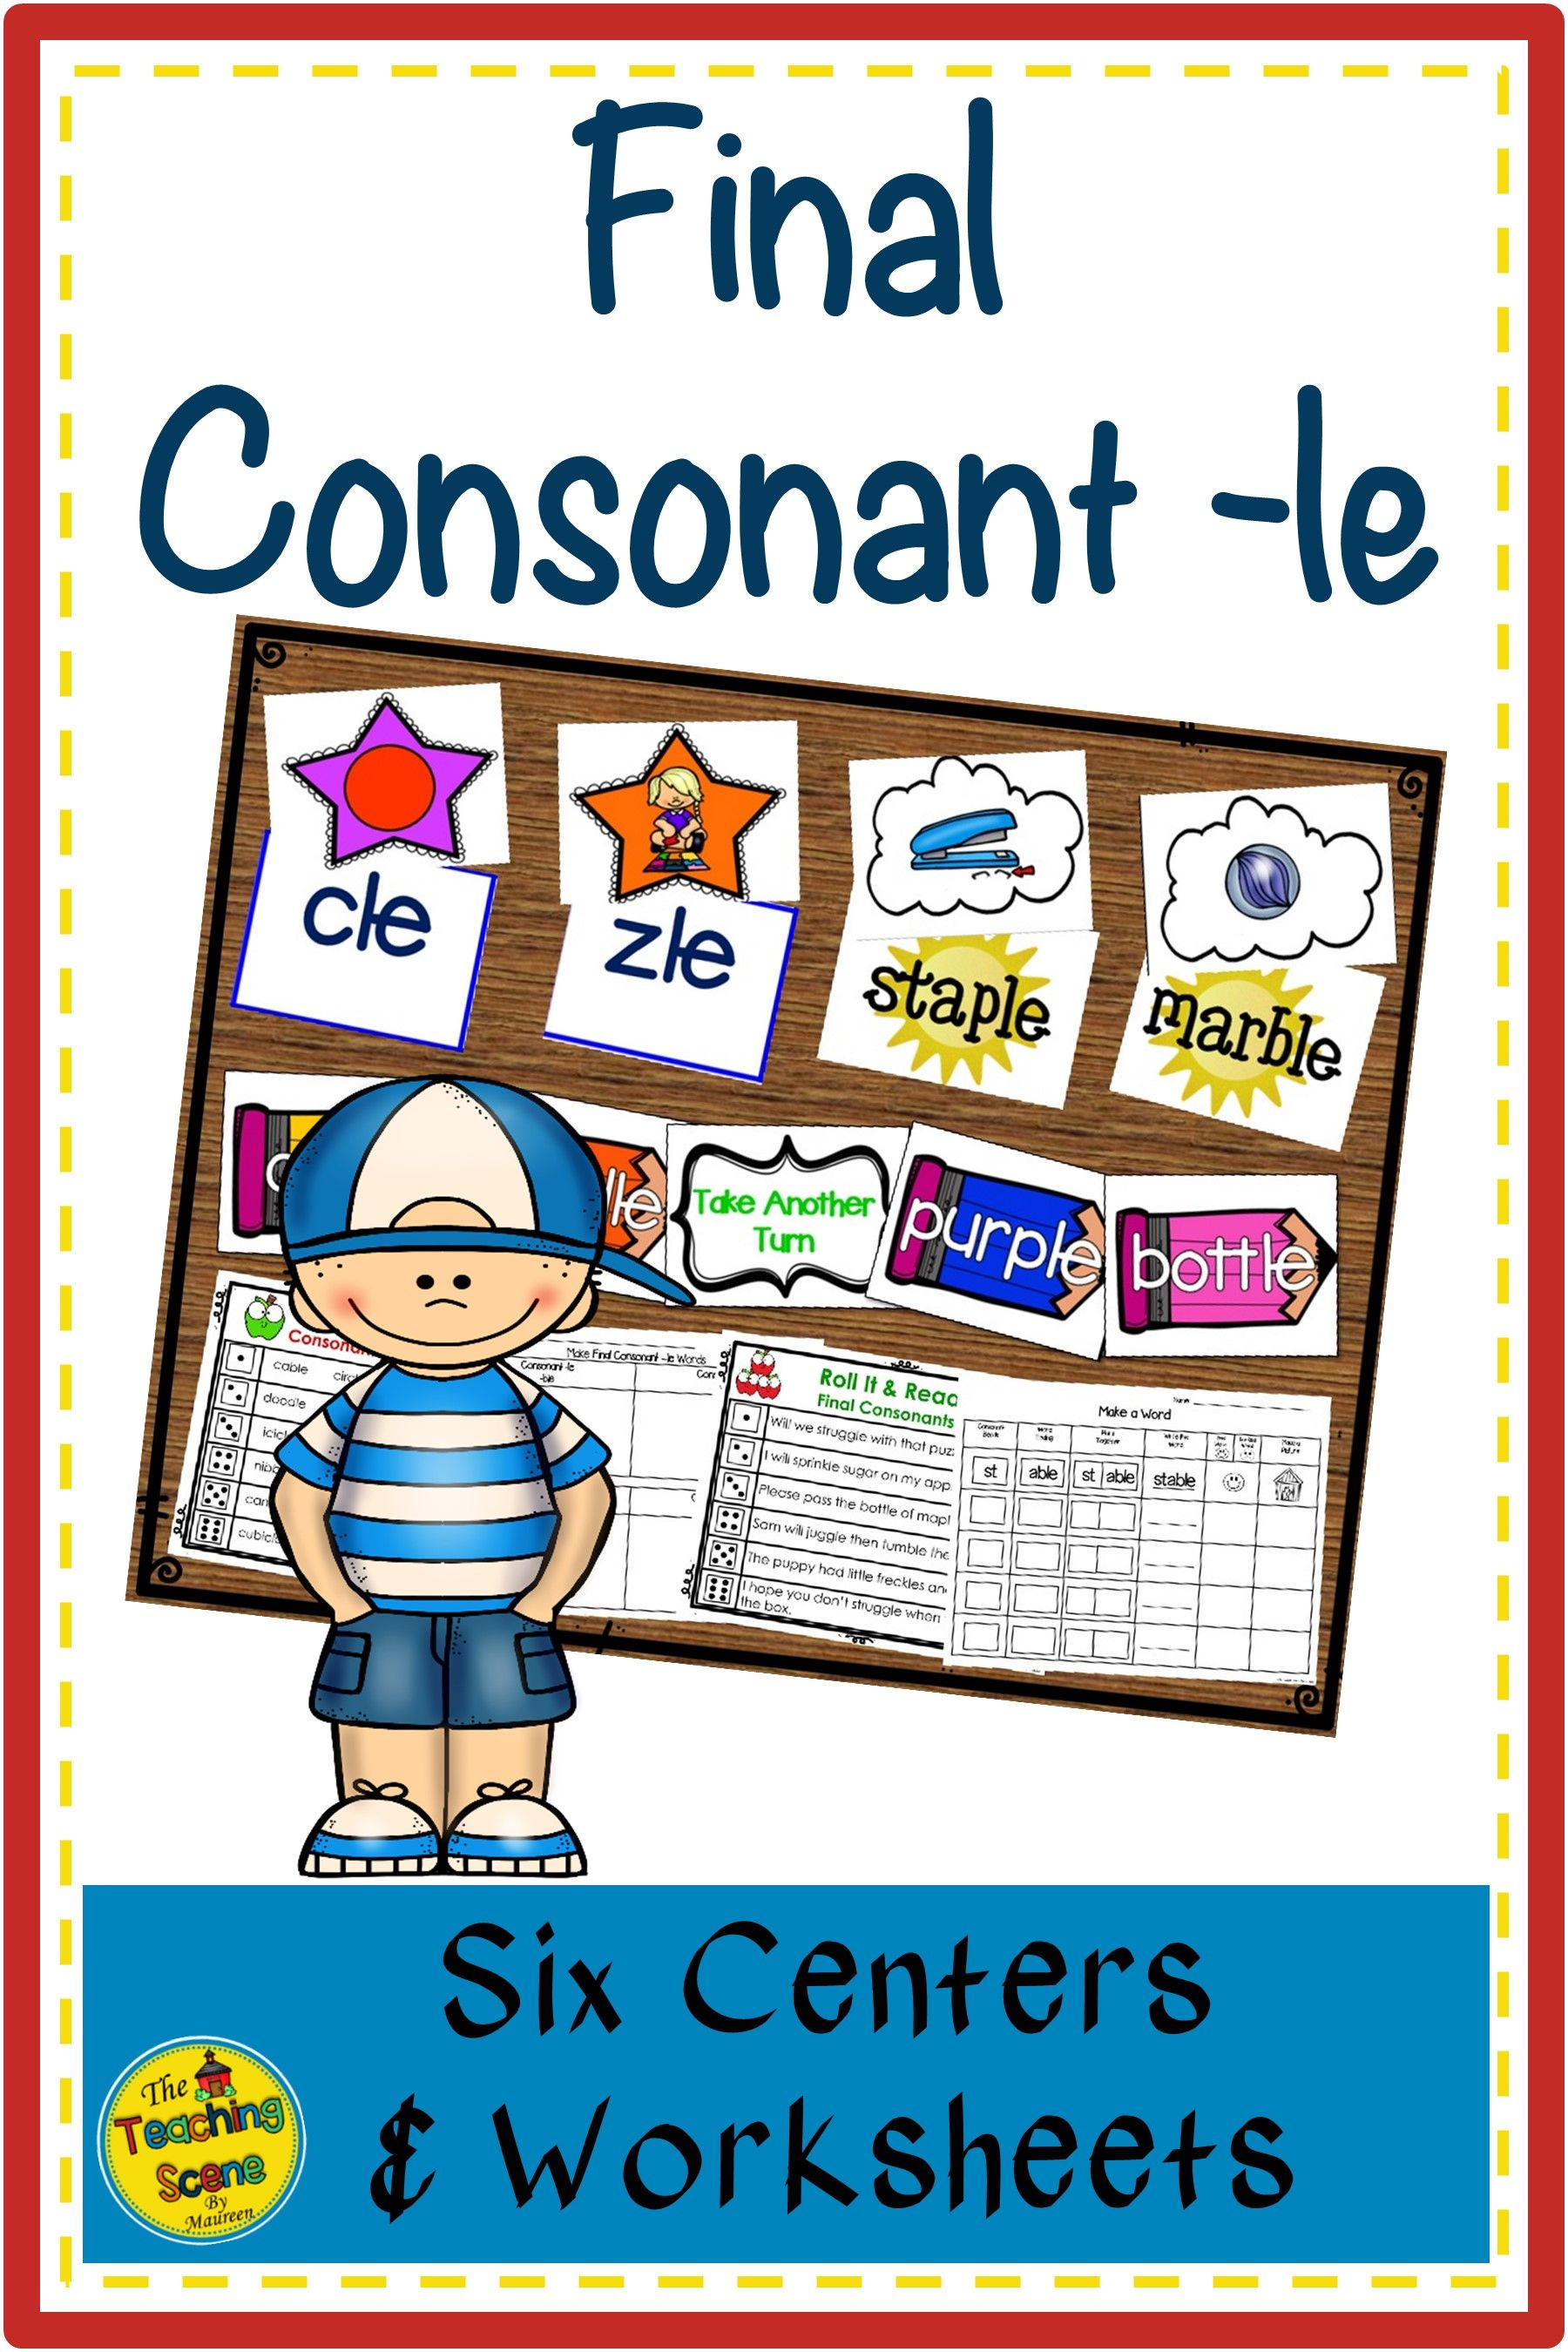 Final Consonants Le Centers Activities Amp Worksheets In